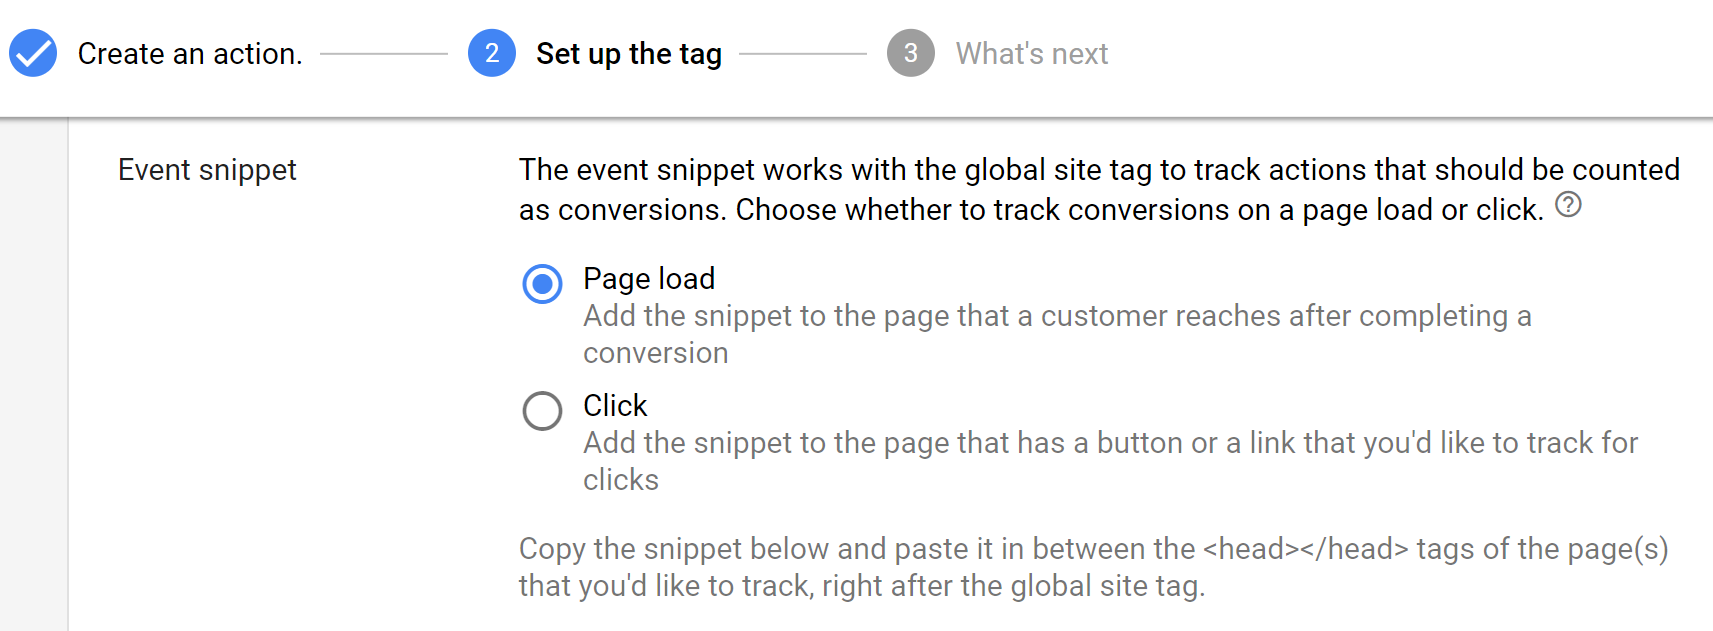 The event snippet s typically used to record page loads and specific conversion events, such as product sales in our case.